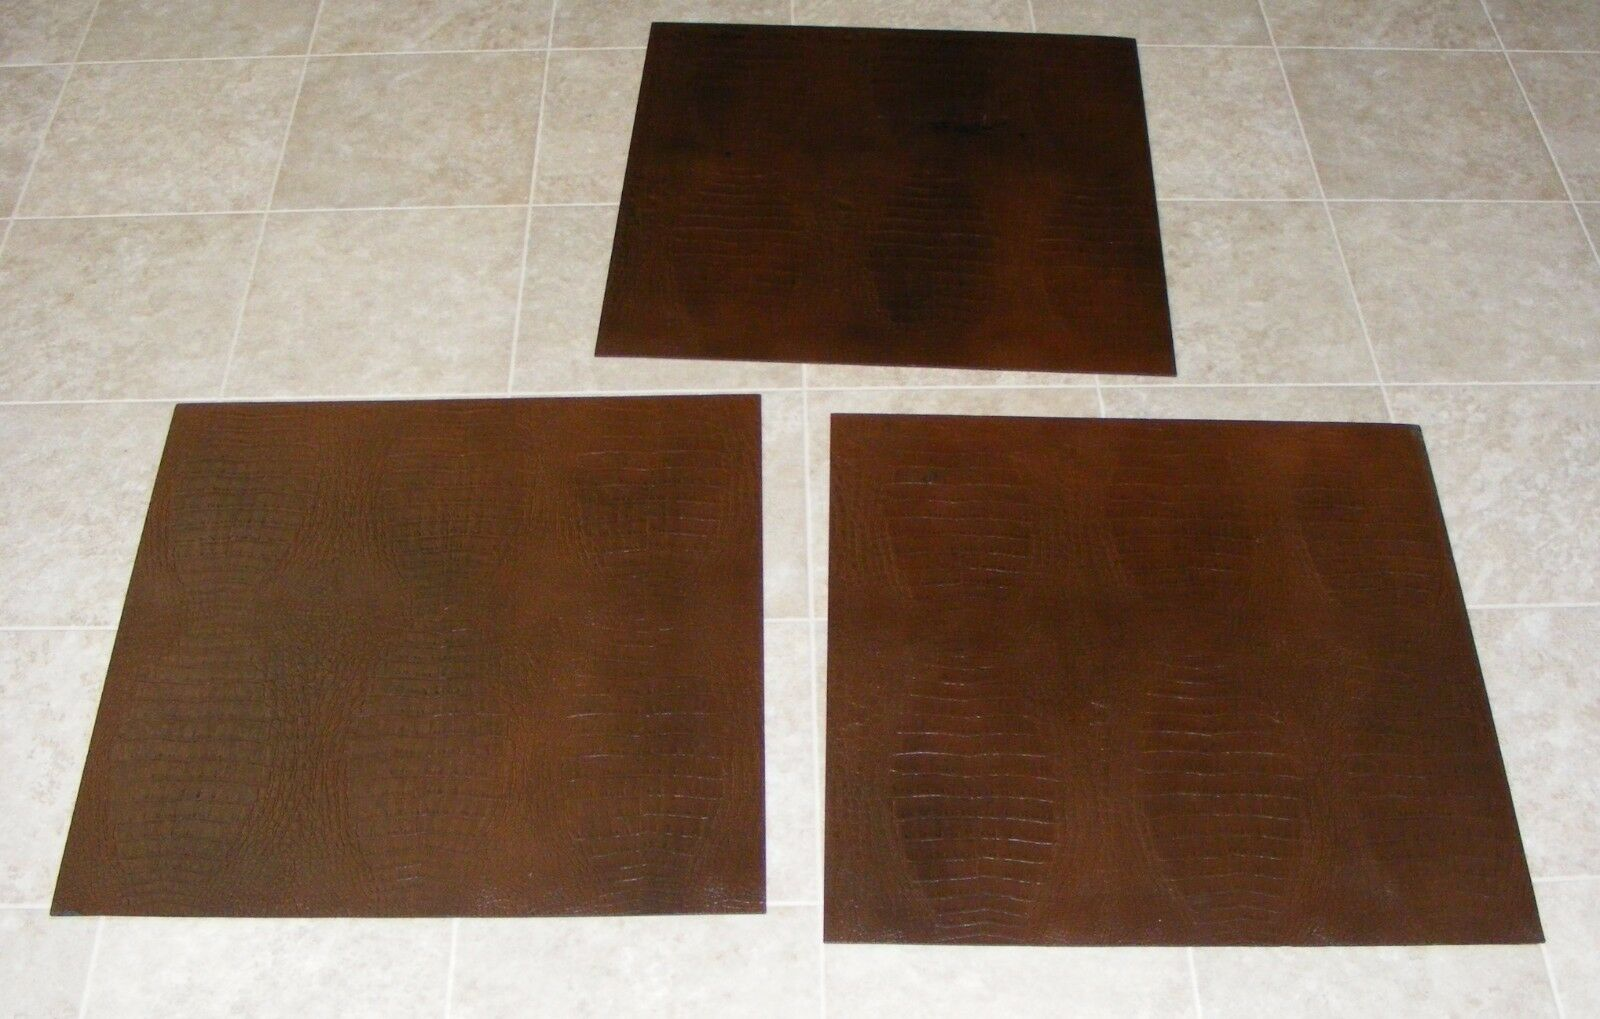 (TSAC7067) 3 Damaged Robus rot braun Gator Print Synthetic Leather Floor Tile